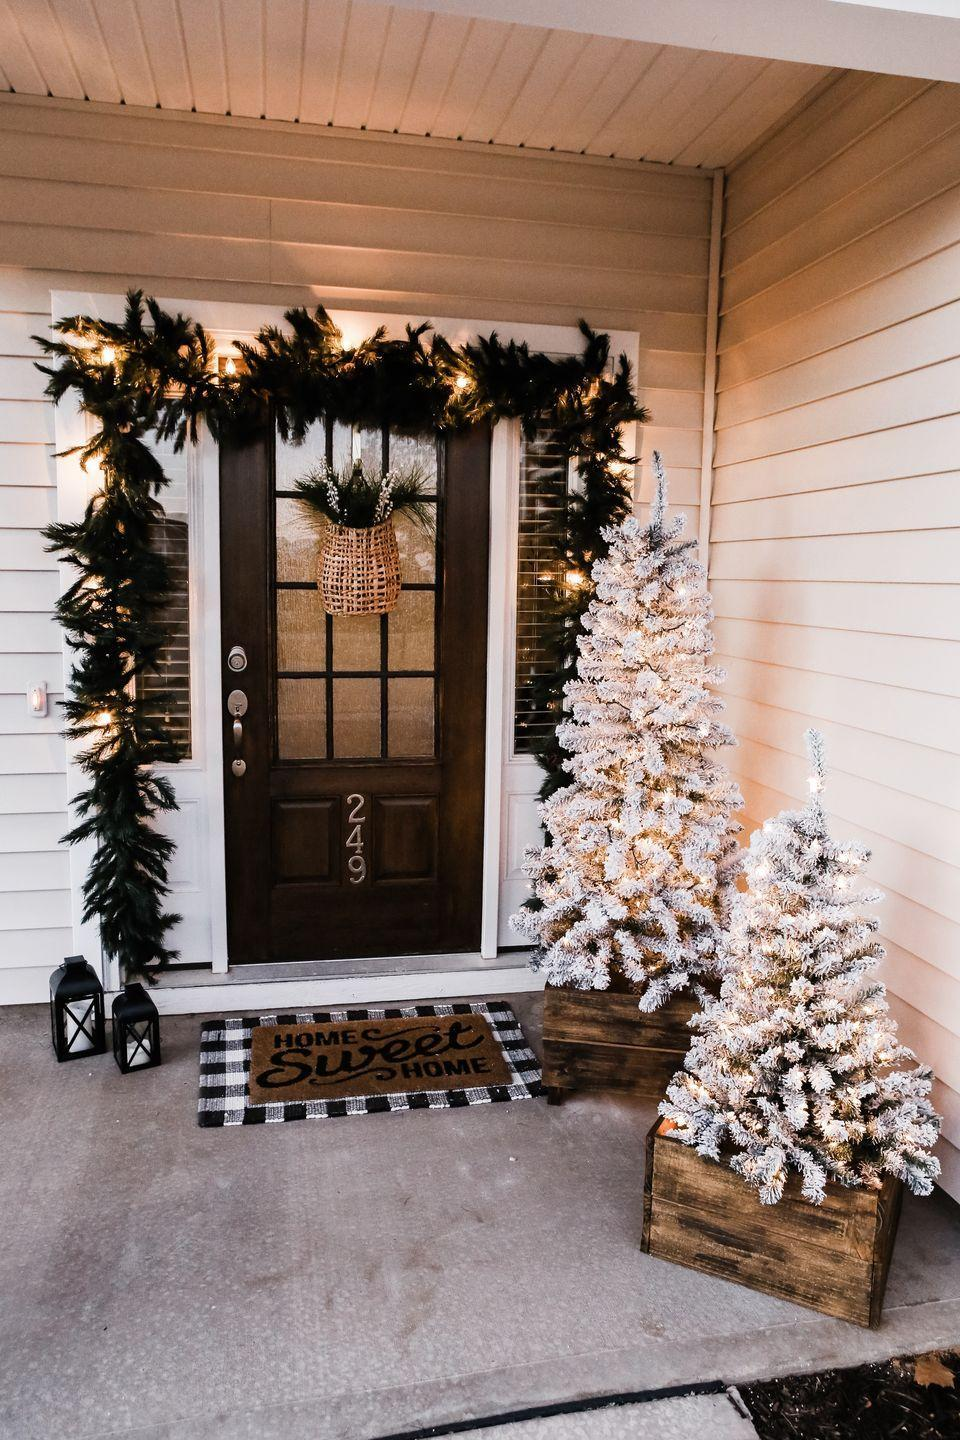 "<p>This neutral holiday tableau by <a href=""https://jordanjean.com/our-festive-home-exterior-for-christmas/"" rel=""nofollow noopener"" target=""_blank"" data-ylk=""slk:Jordan Jean Blog"" class=""link rapid-noclick-resp"">Jordan Jean Blog</a> is both chic and welcoming. She stuck to a black-and-white theme and added earth-toned accents. The hanging wicker basket on the door, filled with fresh greenery, is a stylish touch.</p>"